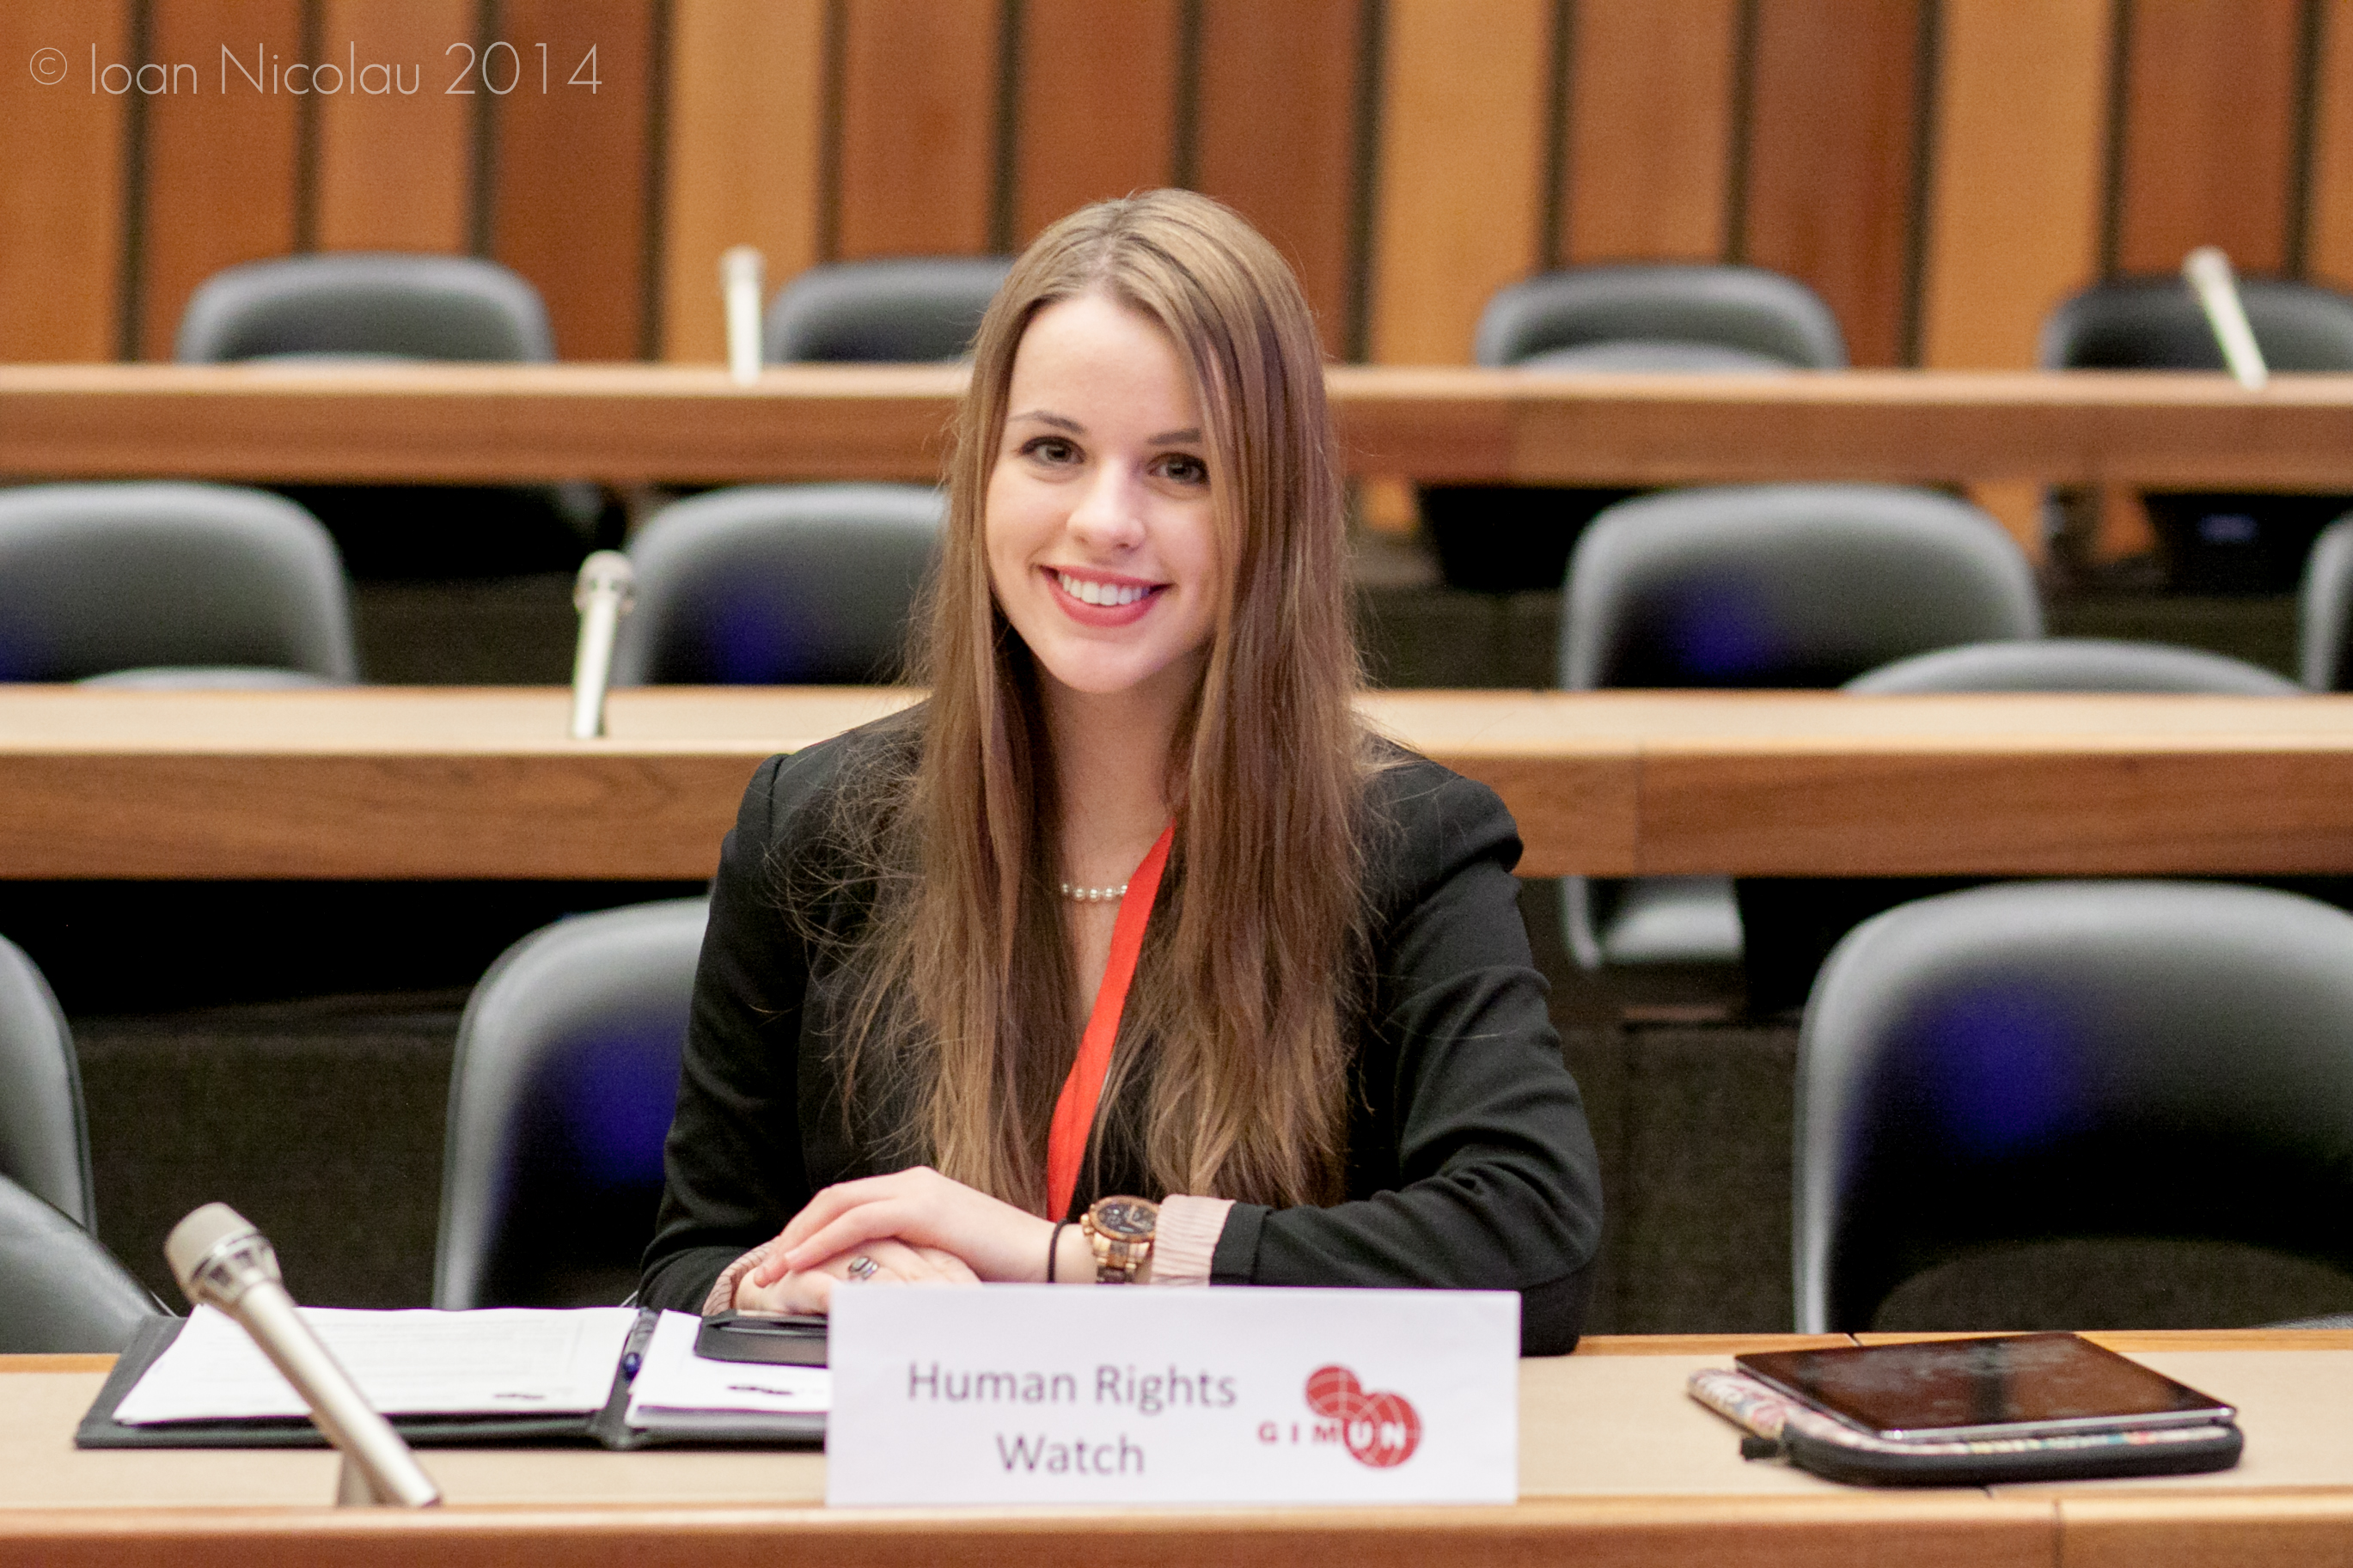 Pace University student Lindita Capric '16 representing Human Rights Watch at a simulation of the Human Rights Council at the 2014 Geneva International Model UN conference.